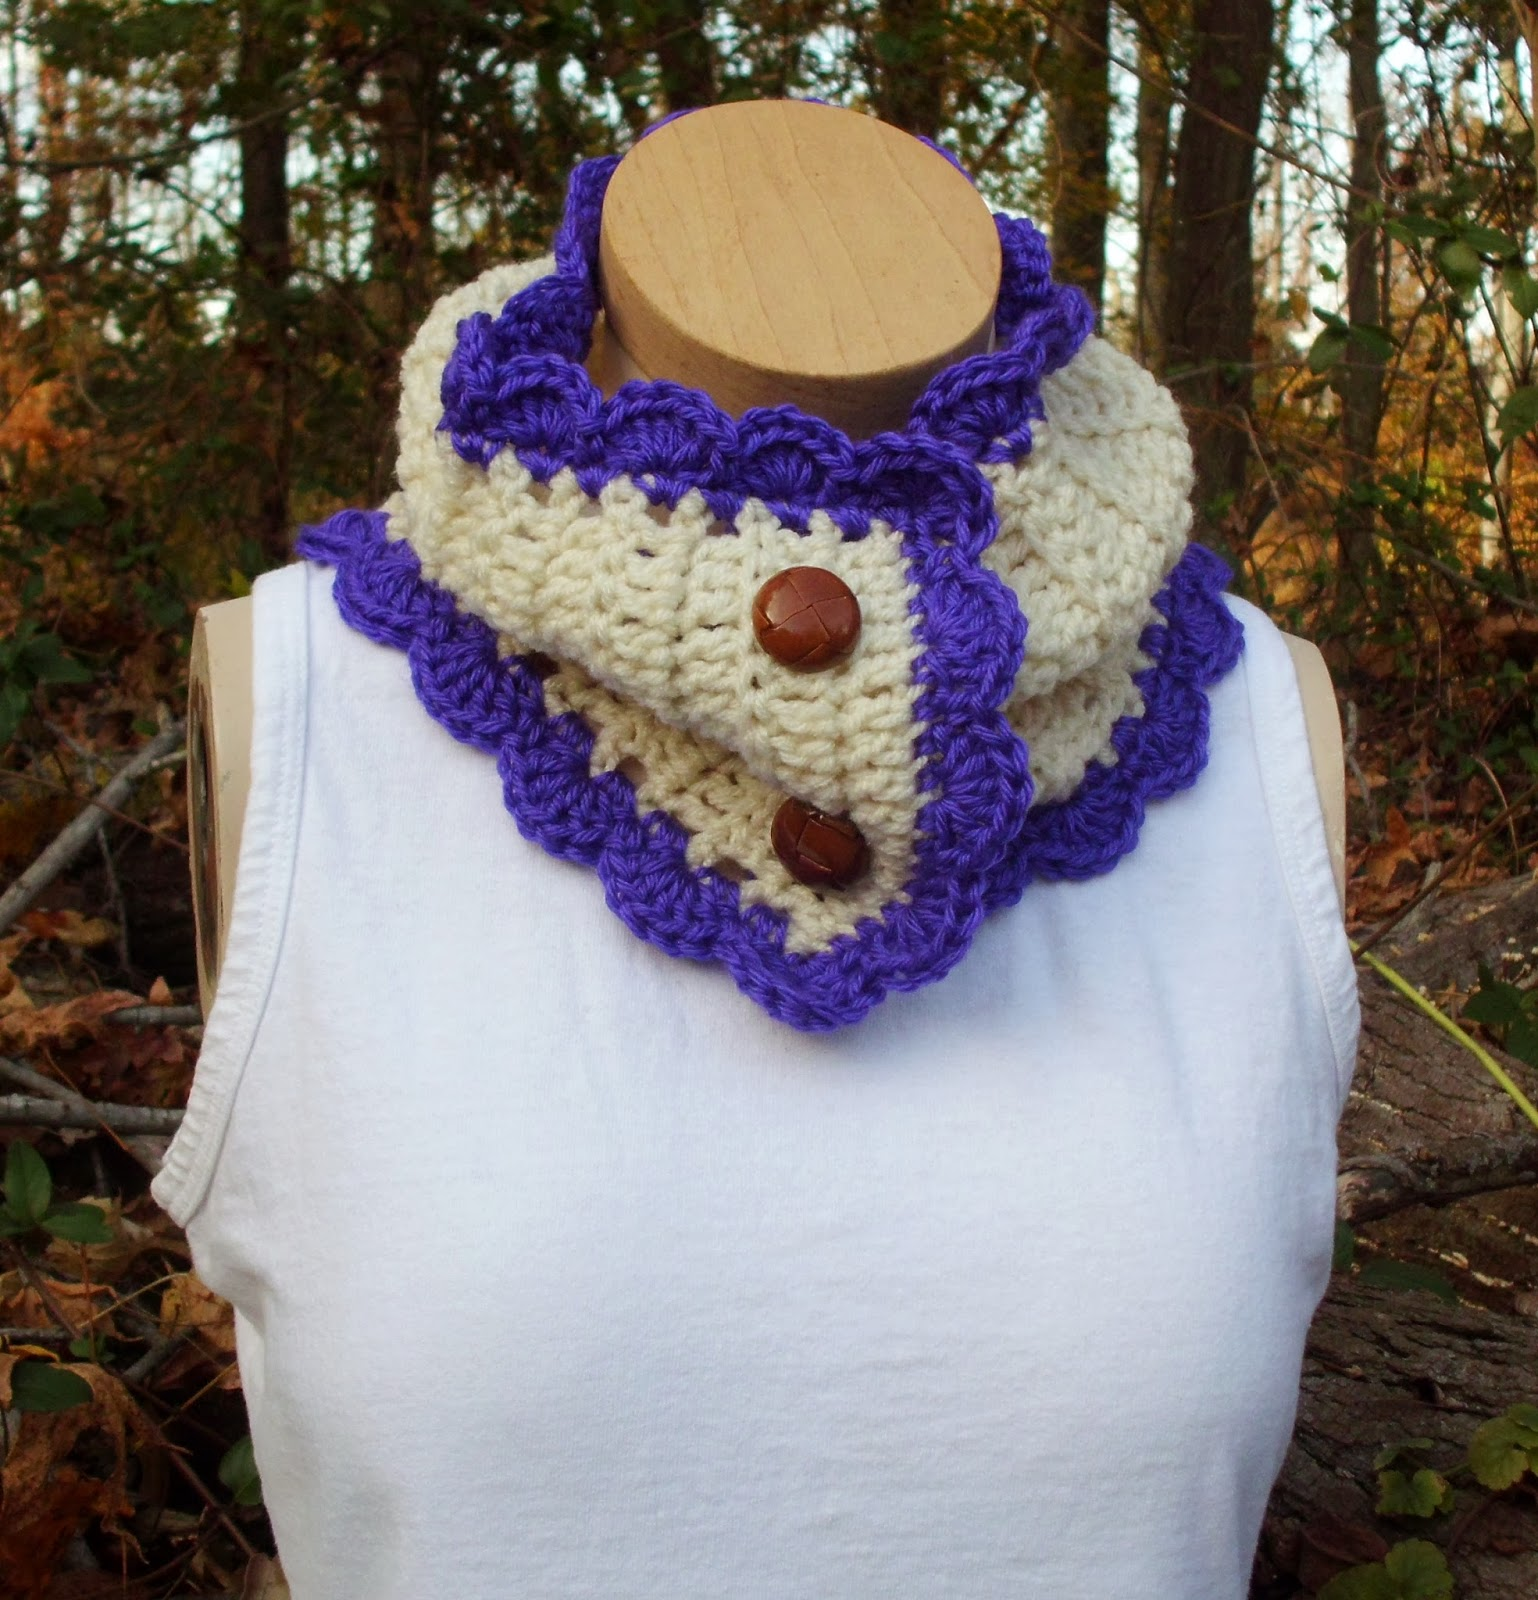 Crochet Patterns Neck Warmers : Rose Cottage Crochet: Crochet Neck Warmer Pattern Tutorial